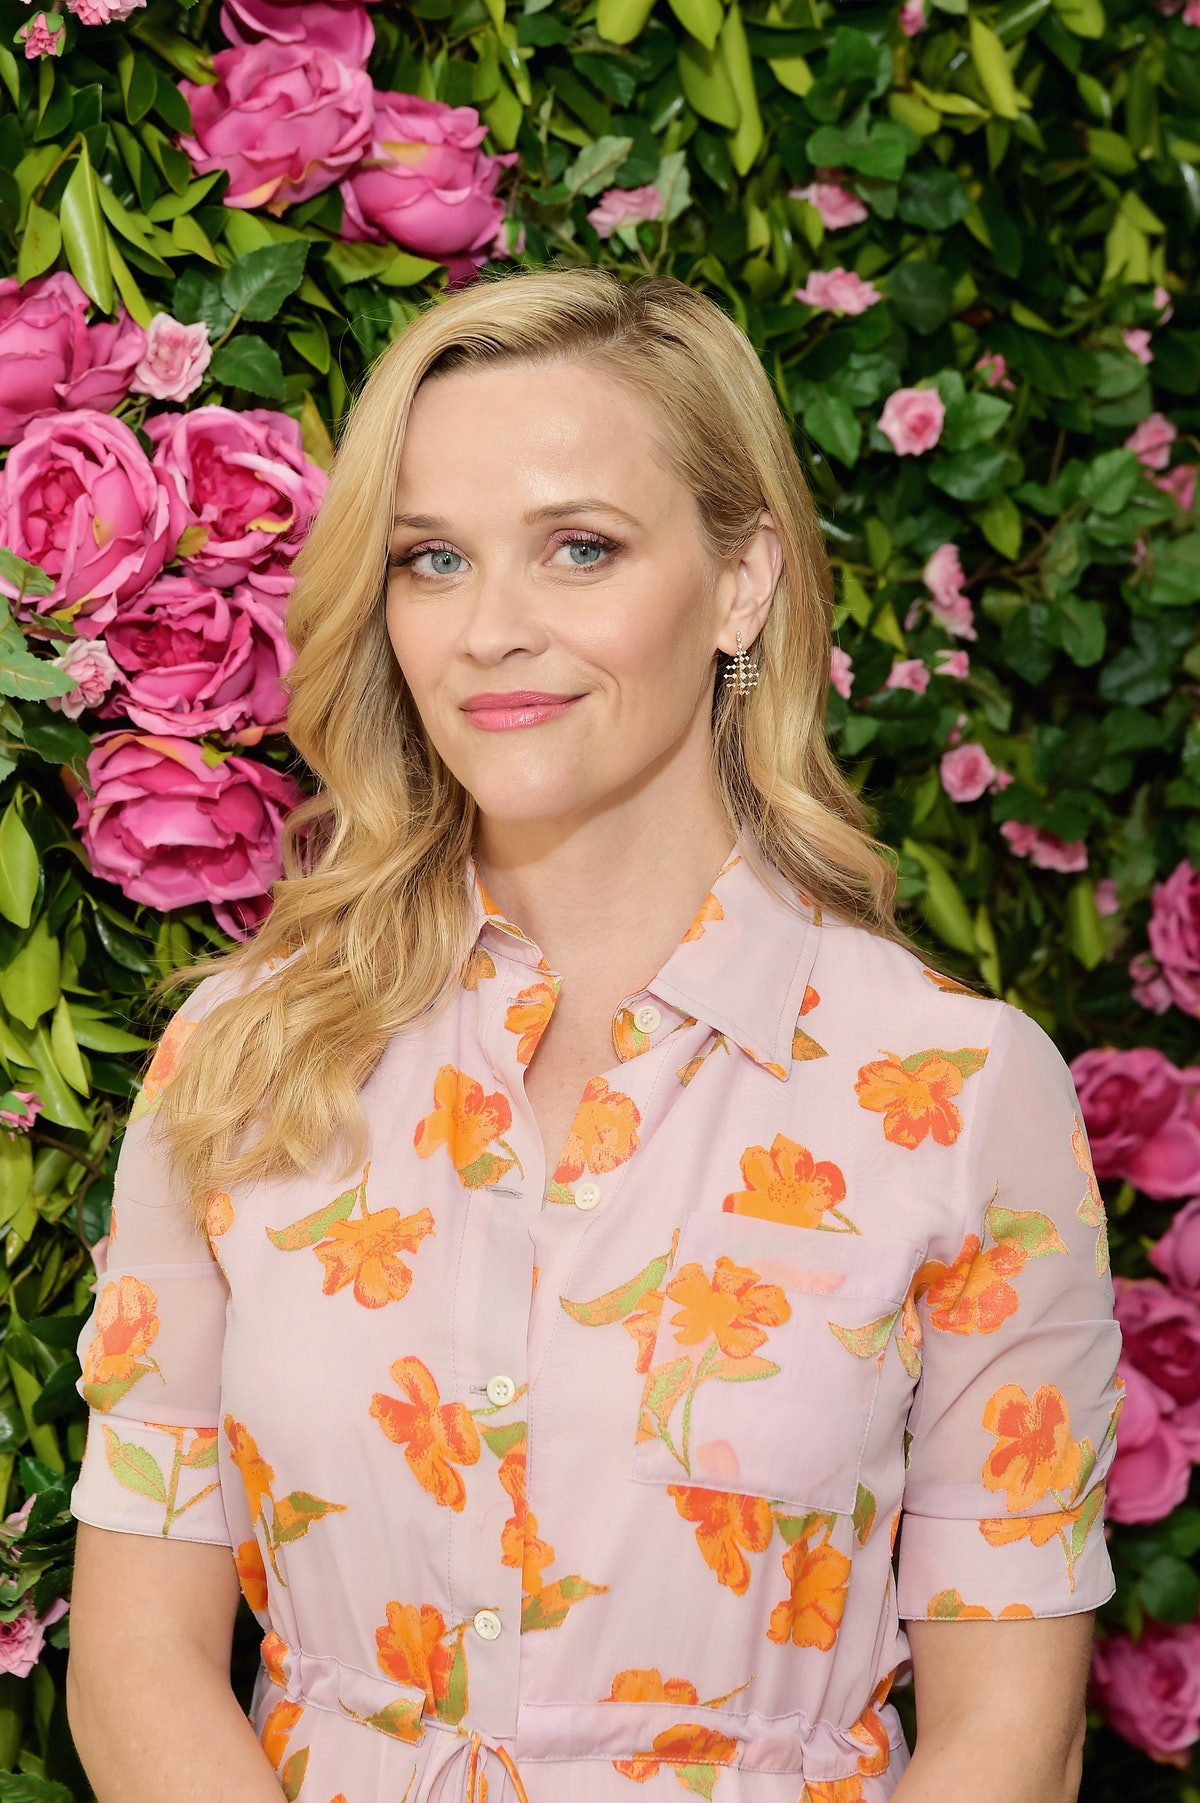 Reese Witherspoon Shares Her Favorite Elle Woods Look & The '90s Beauty Trends She Regrets